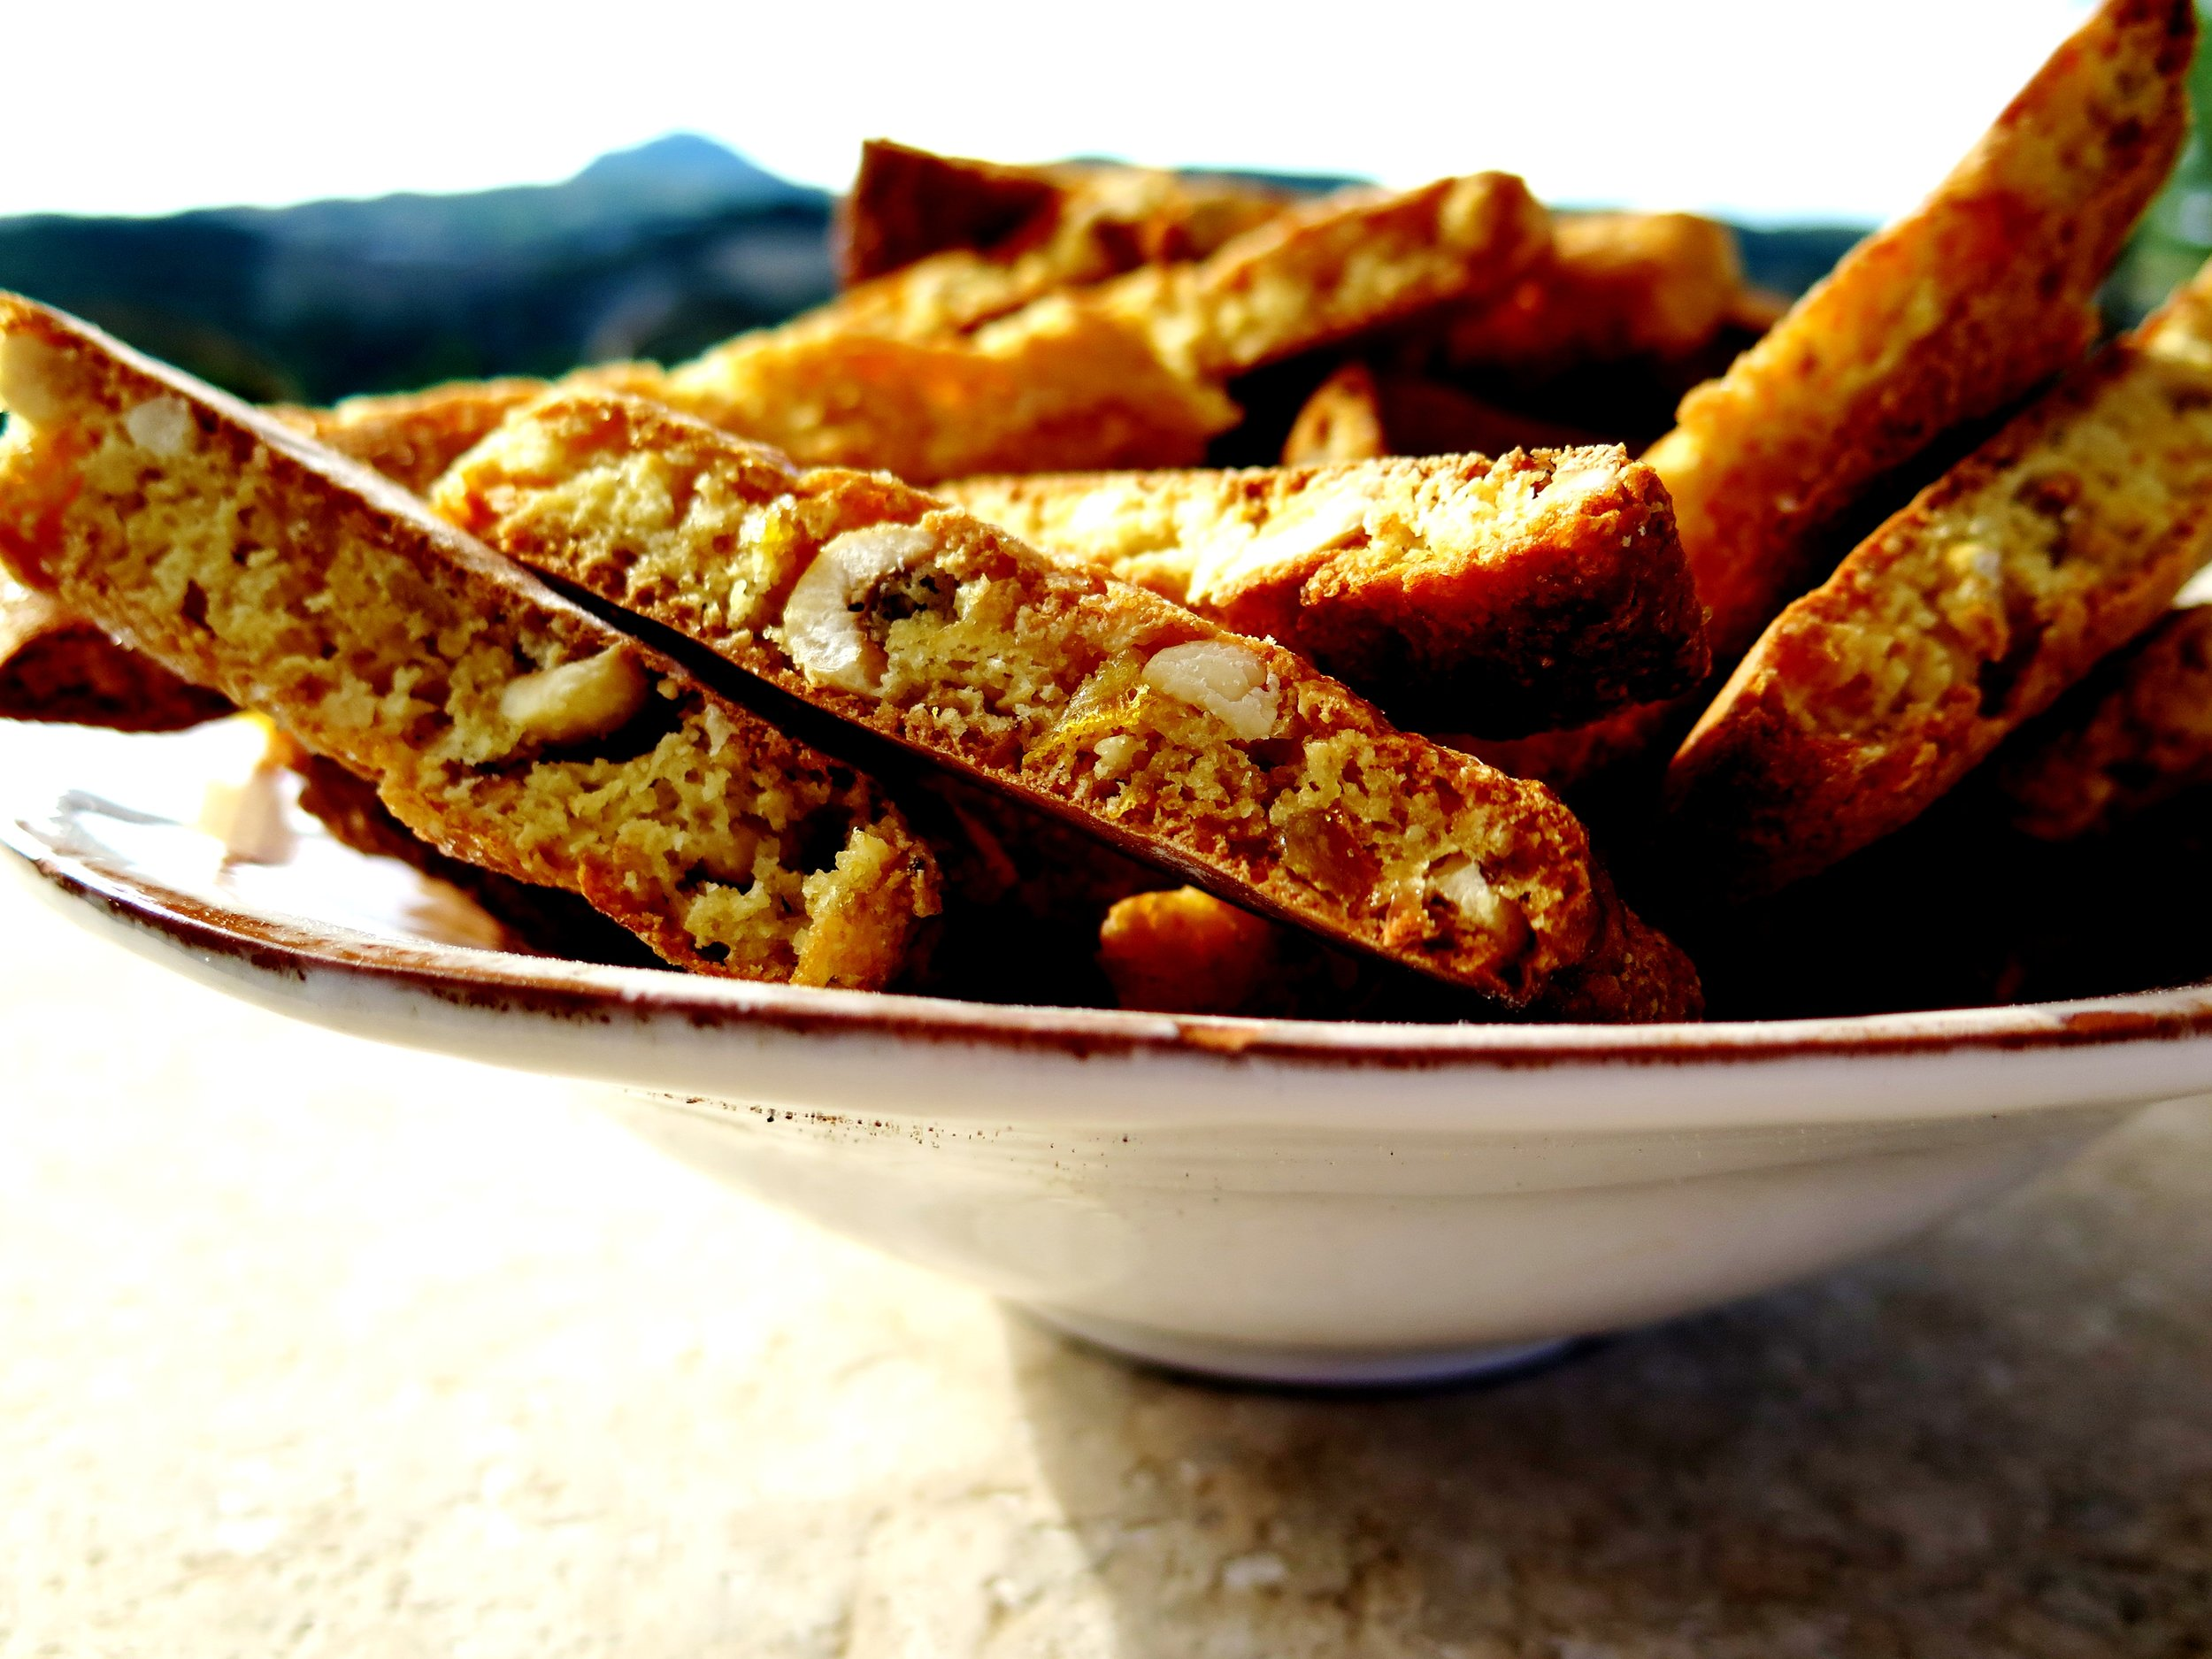 Candied Ginger & Orange Hazelnut Biscotti - Recipe